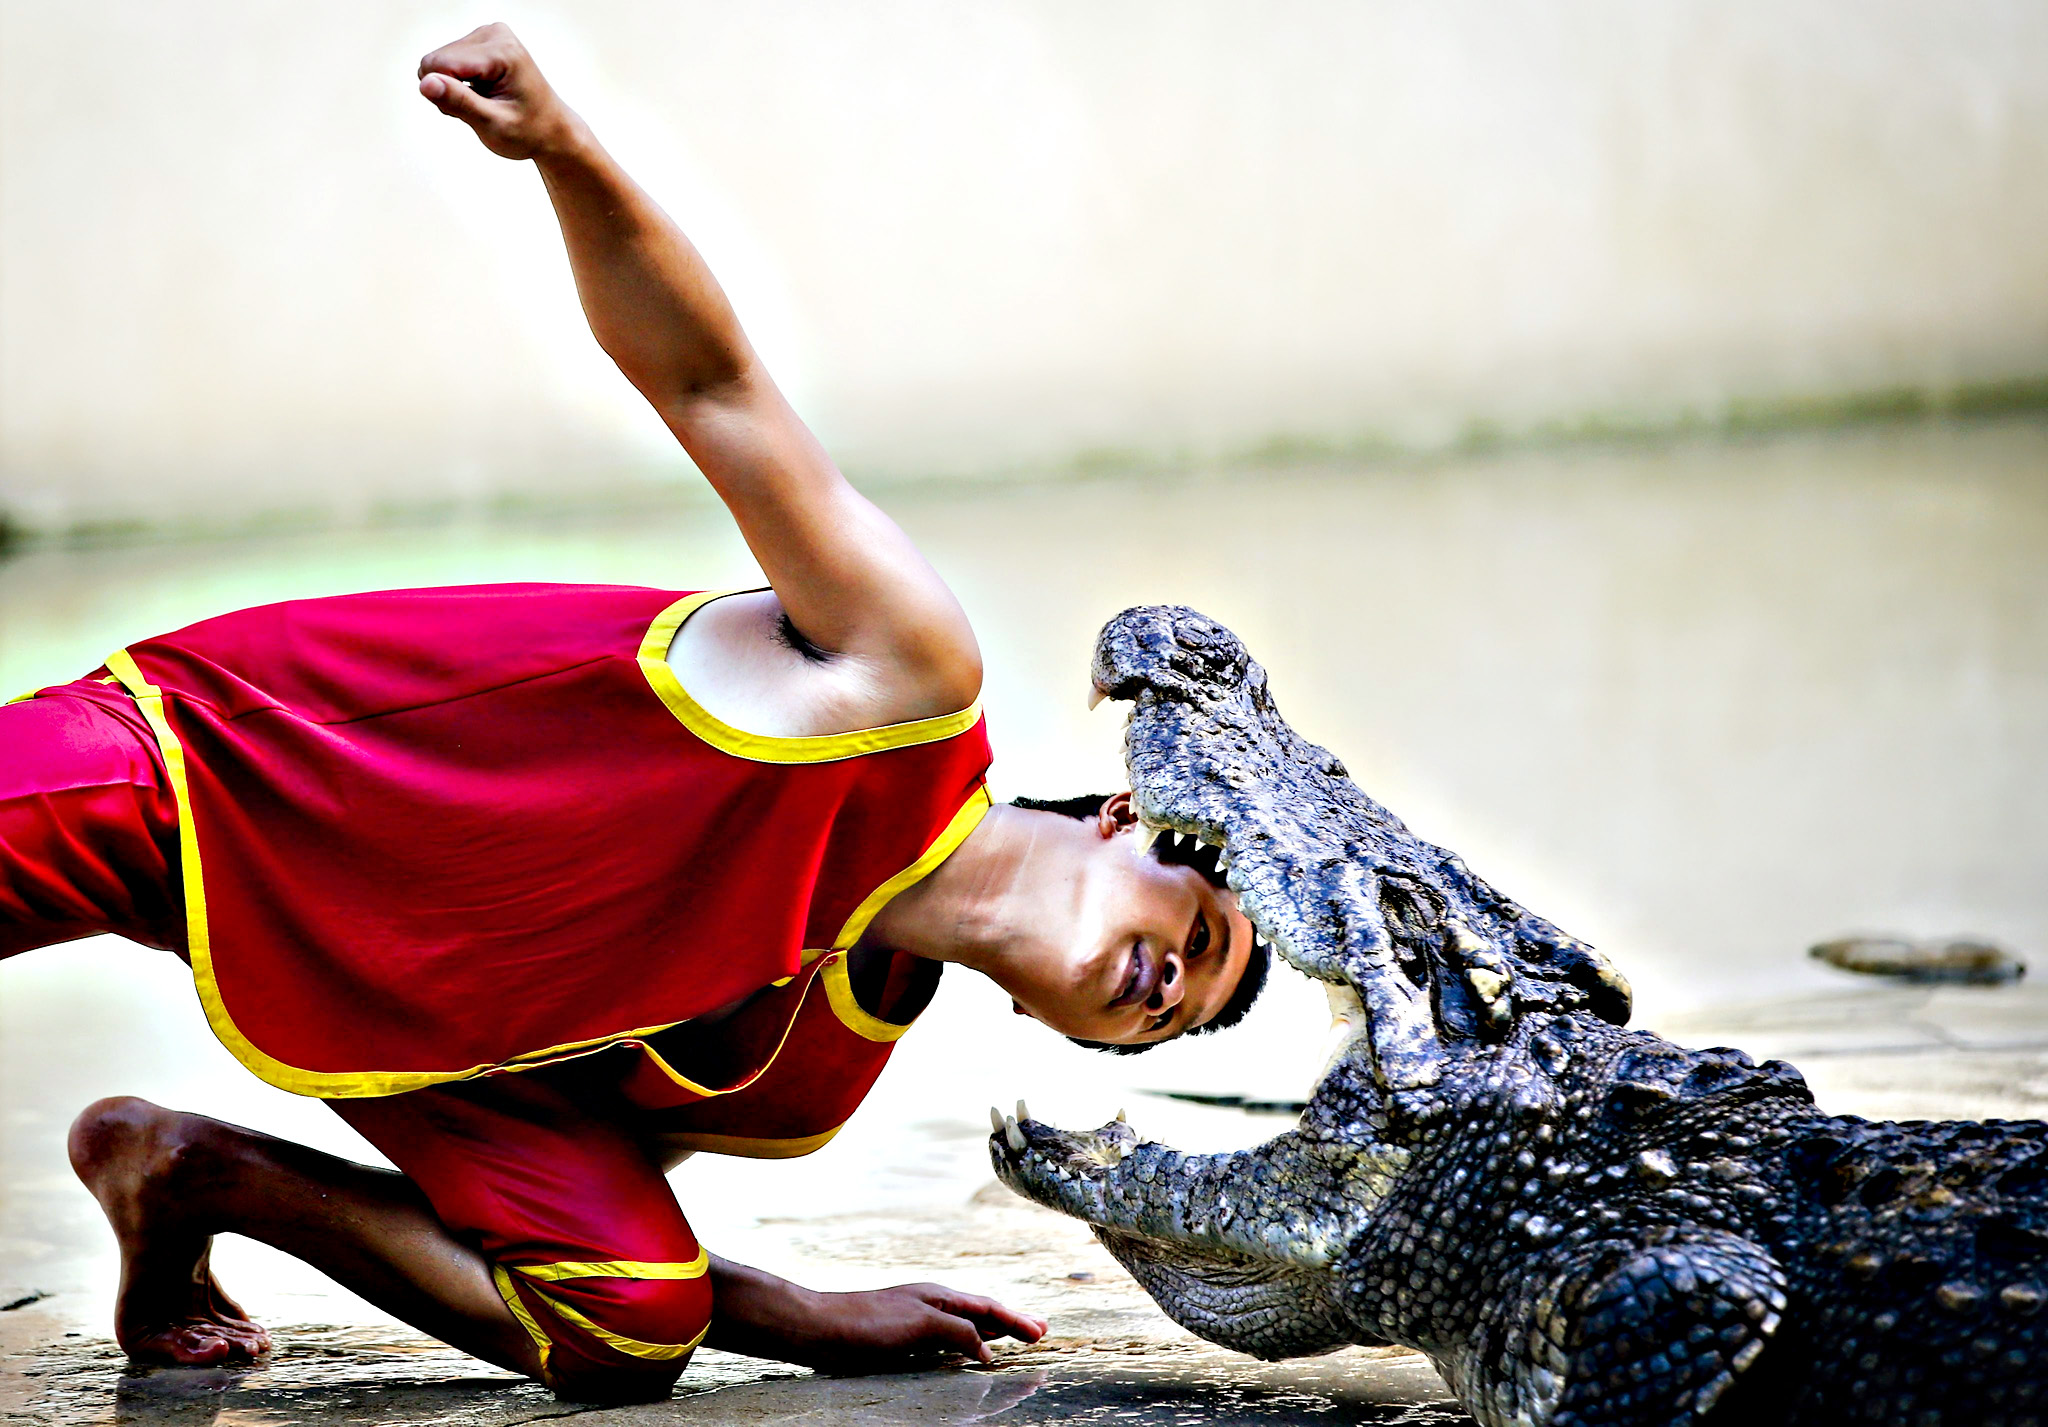 A handler puts his head between the gaping fangs of a crocodile during a show at the Samutprakarn Crocodile Farm and Zoo, Samutprakarn province, outside Bangkok, Thailand. The farm and zoo claims to be the world's largest crocodile farm with more than 80,000 freshwater and marine crocodiles, and offers shows such as crocodile wrestling to attract tourists